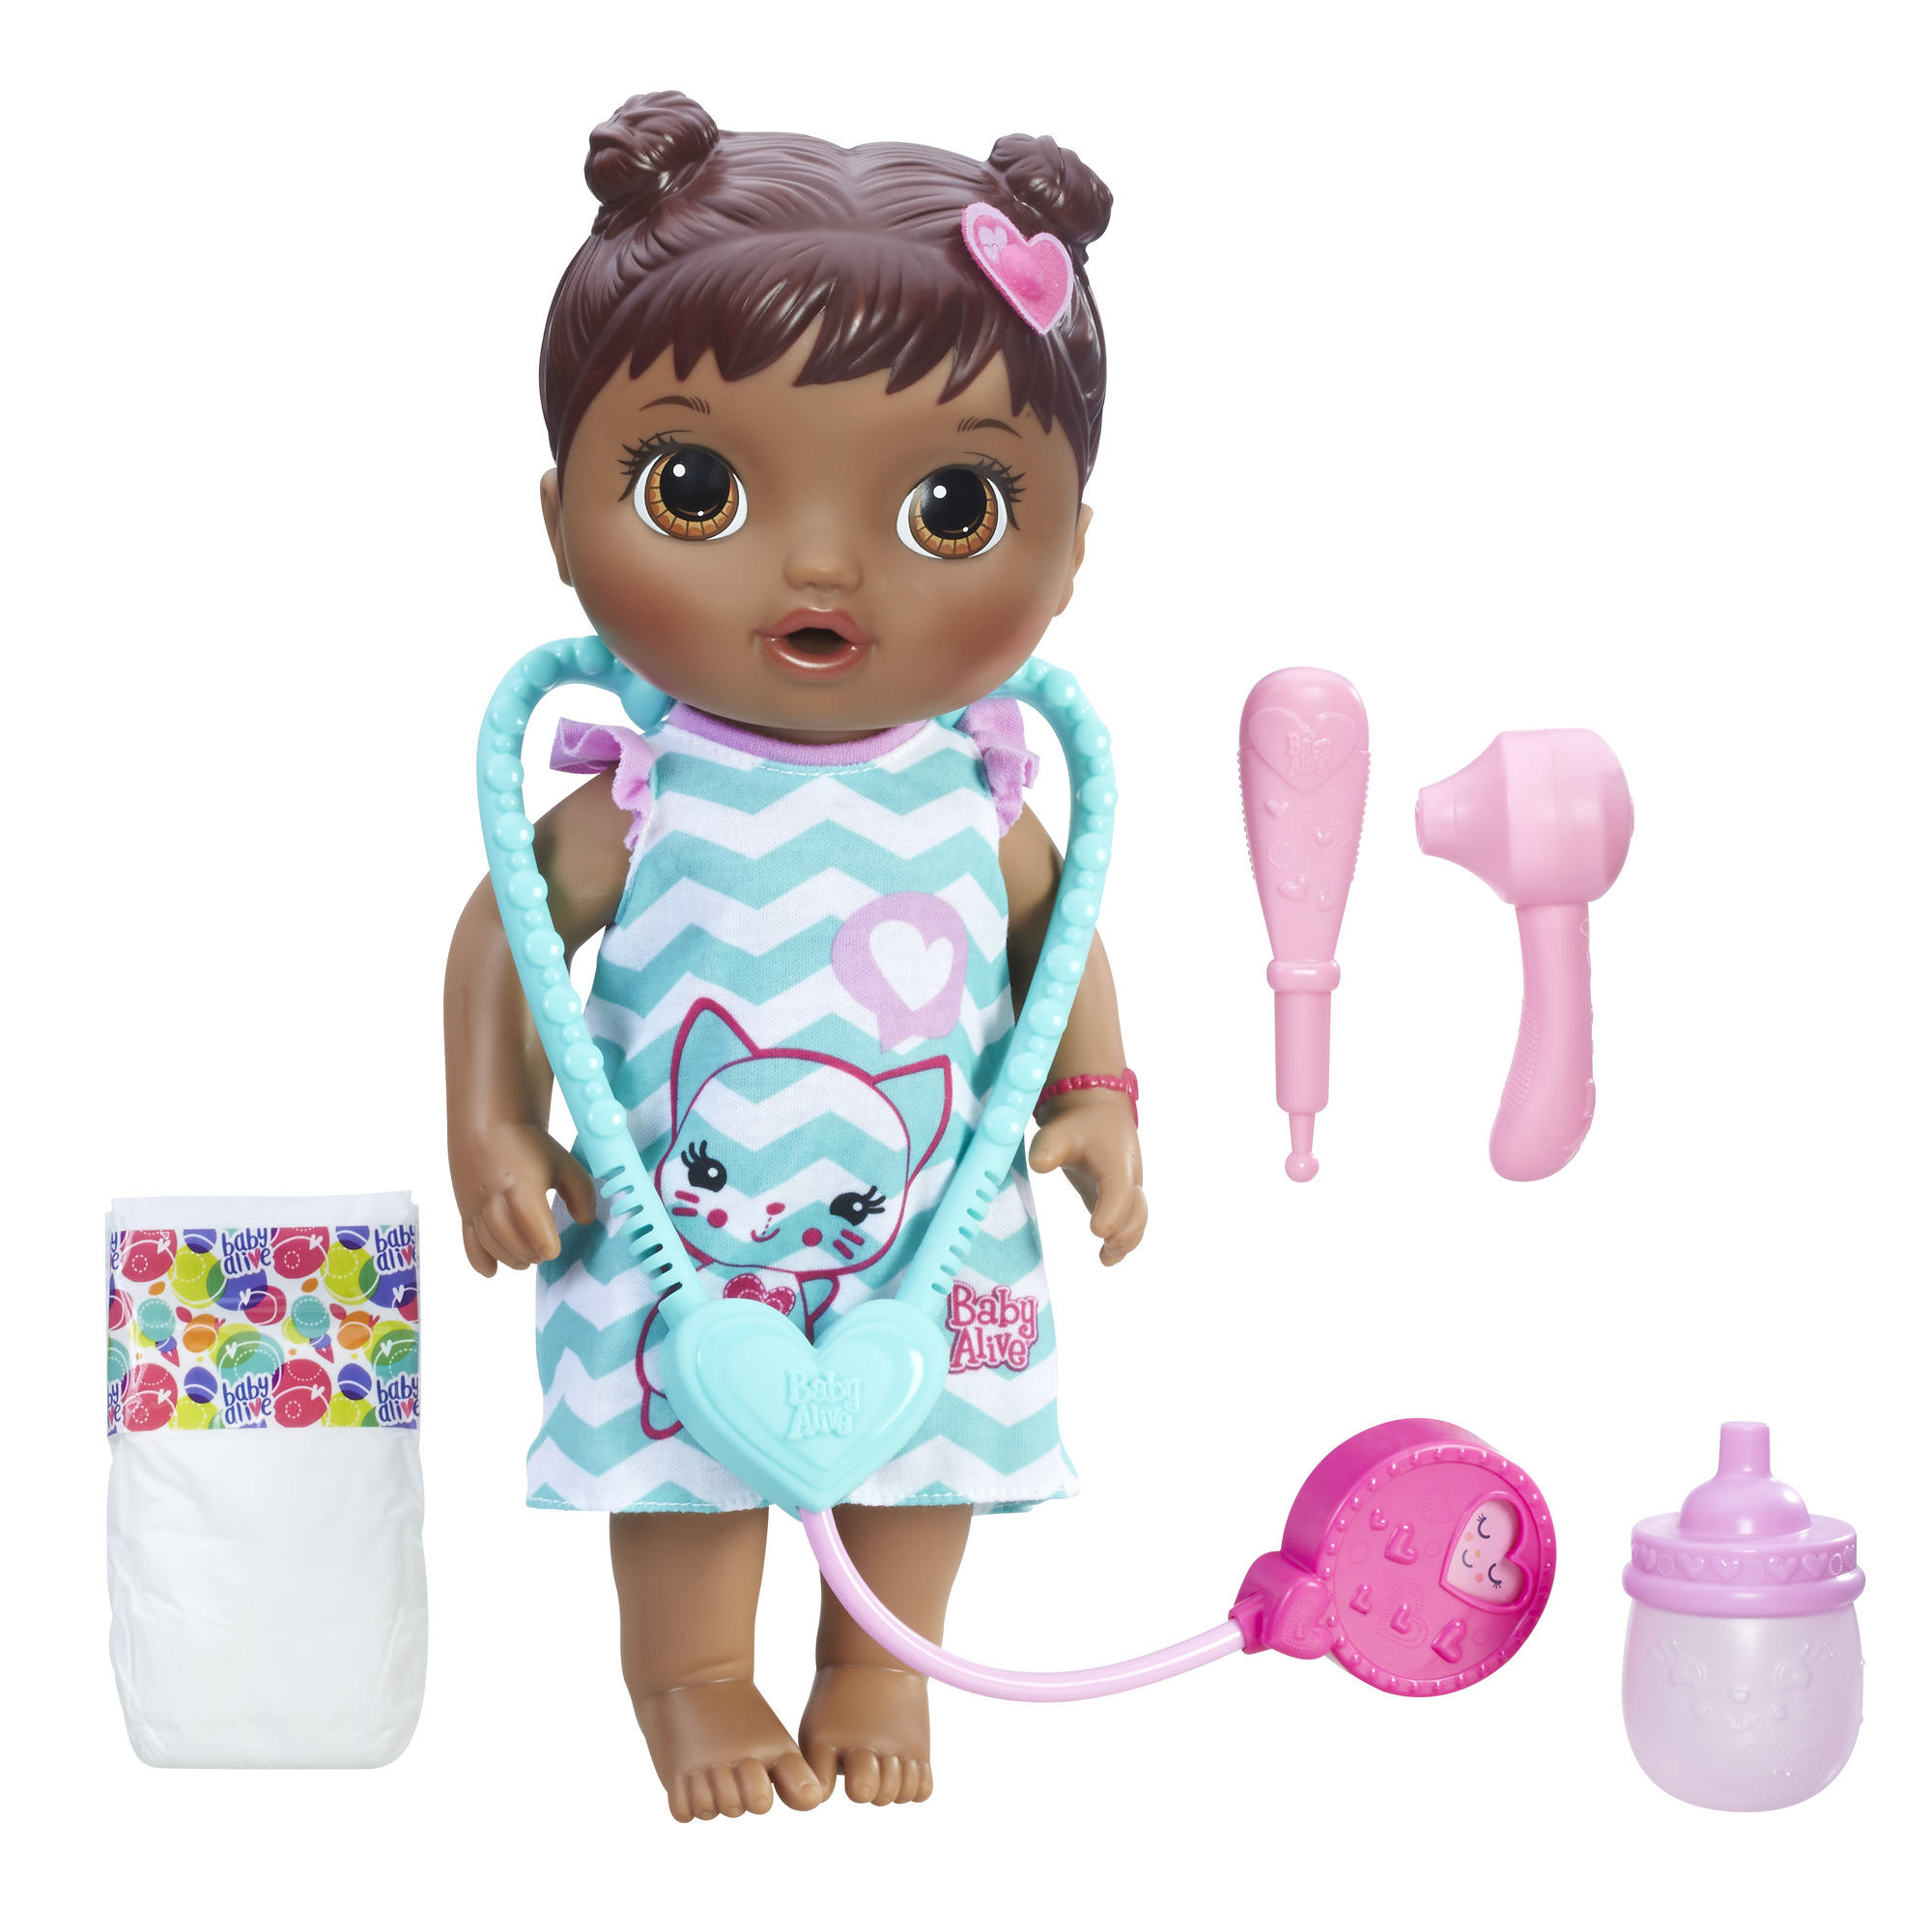 Baby Alive Better Now Bailey Black Hair